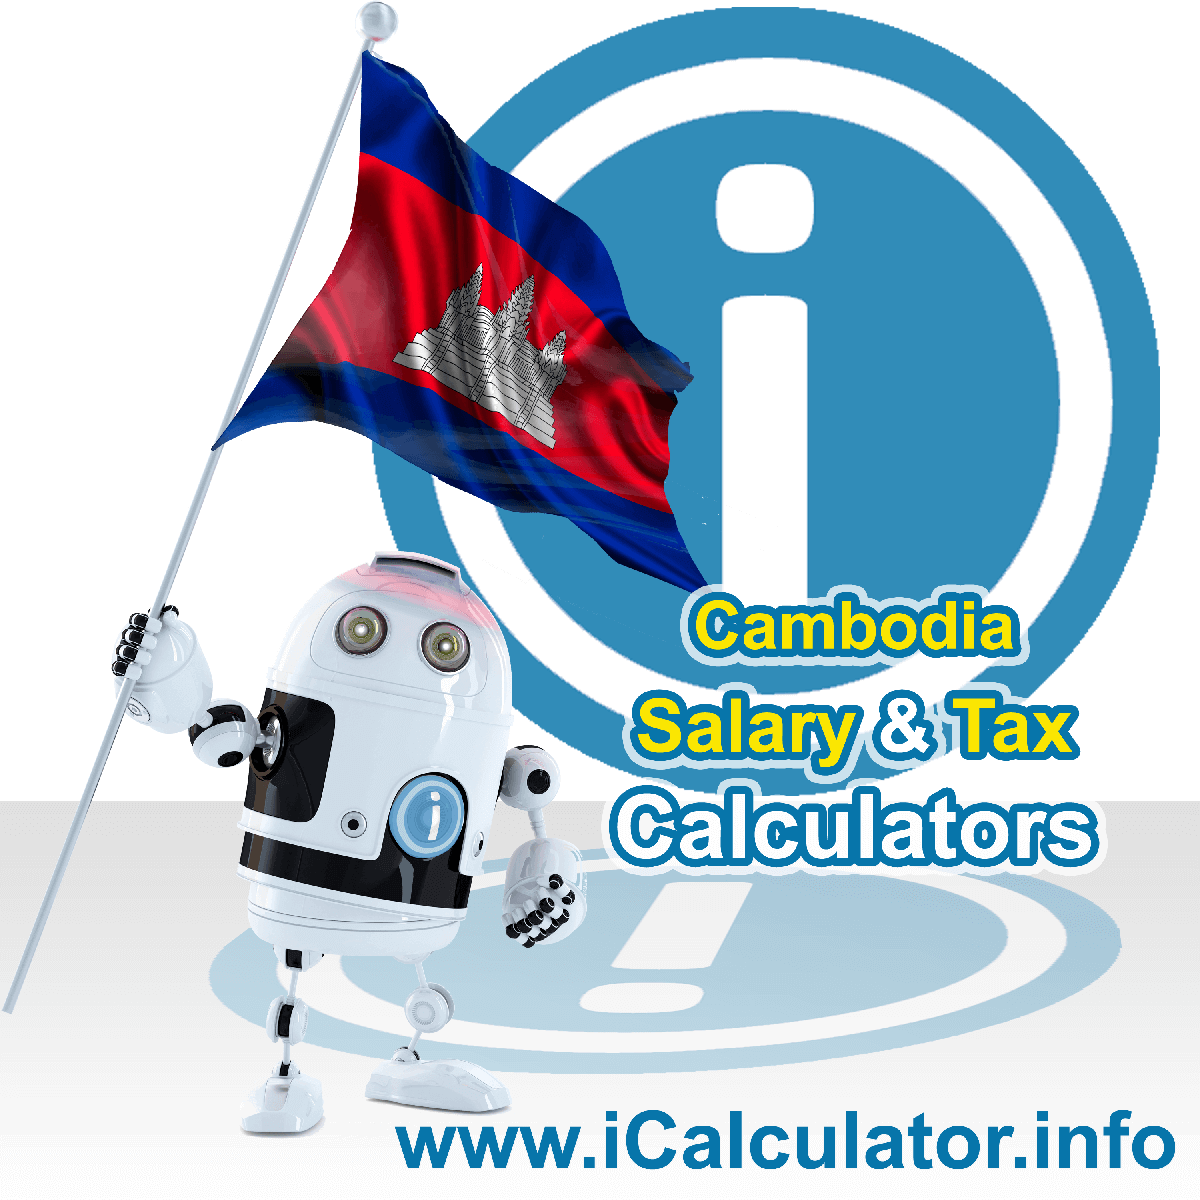 Cambodia Wage Calculator. This image shows the Cambodia flag and information relating to the tax formula for the Cambodia Tax Calculator